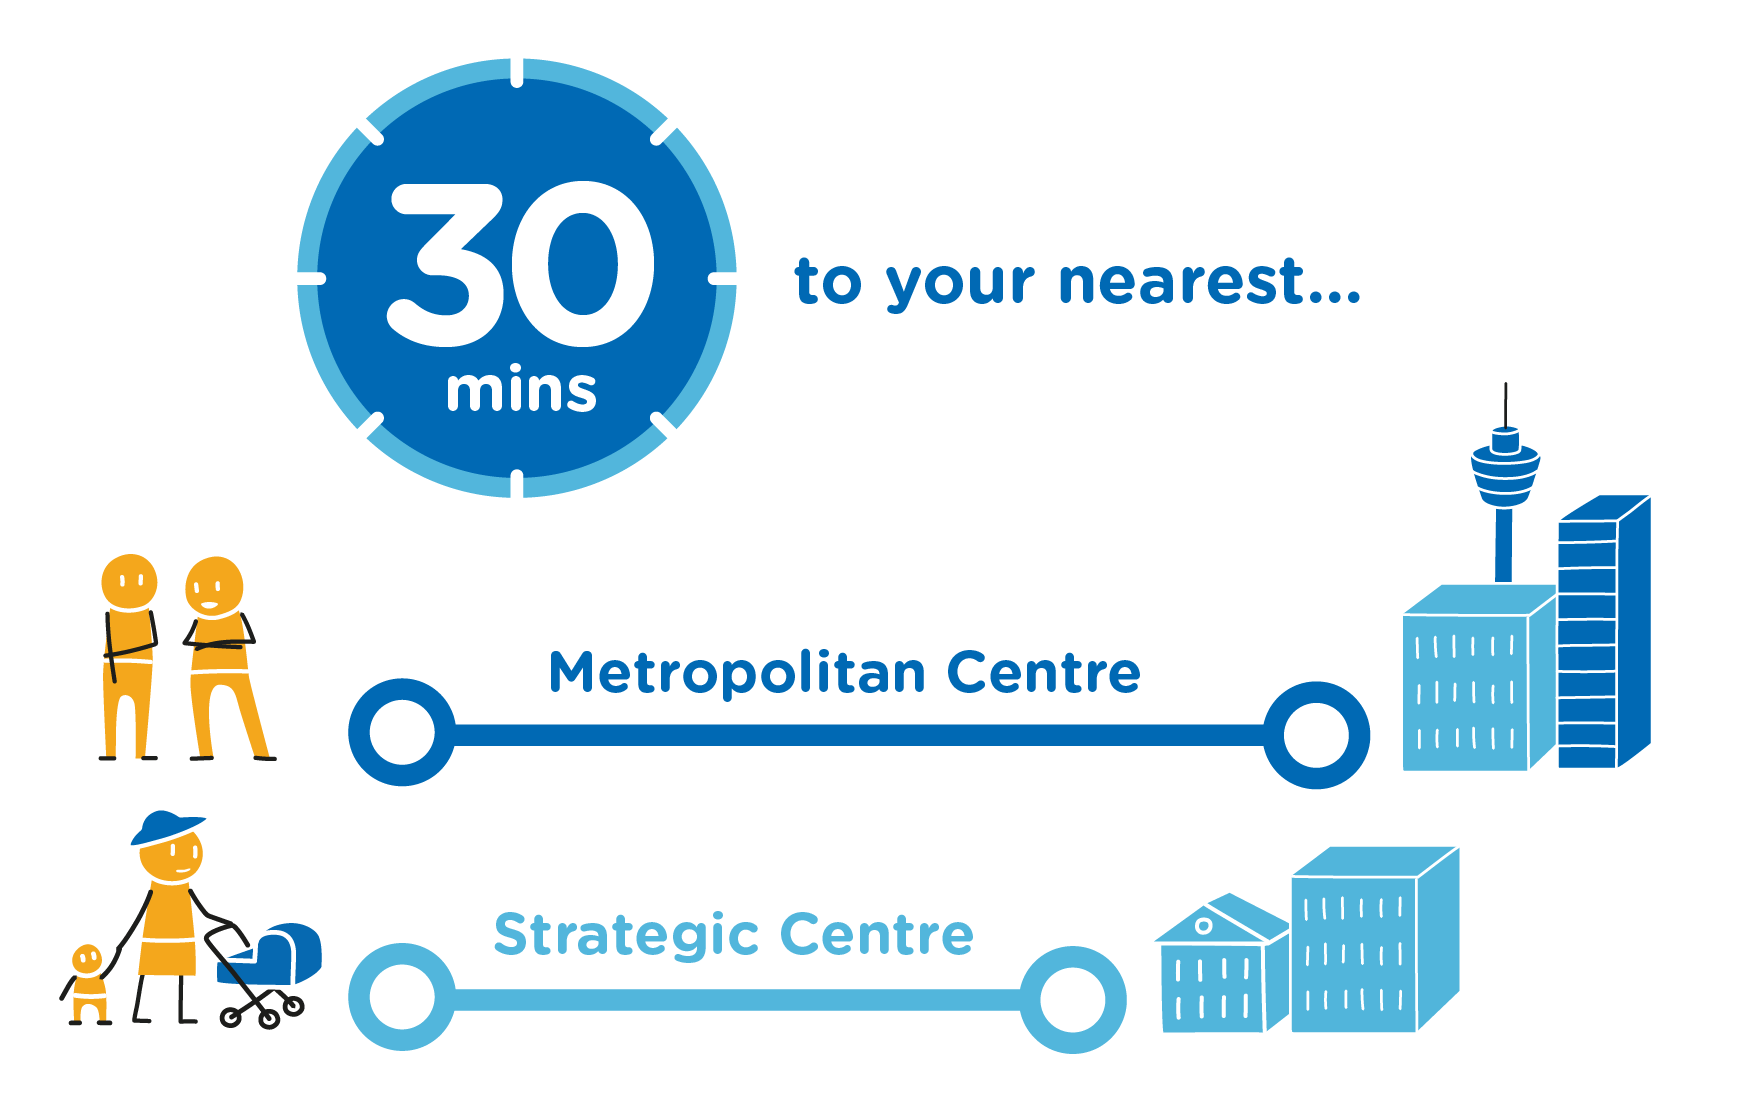 Diagram showing the vision of 30 minutes to your nearest Metropolitan Centre and Strategic Centre.